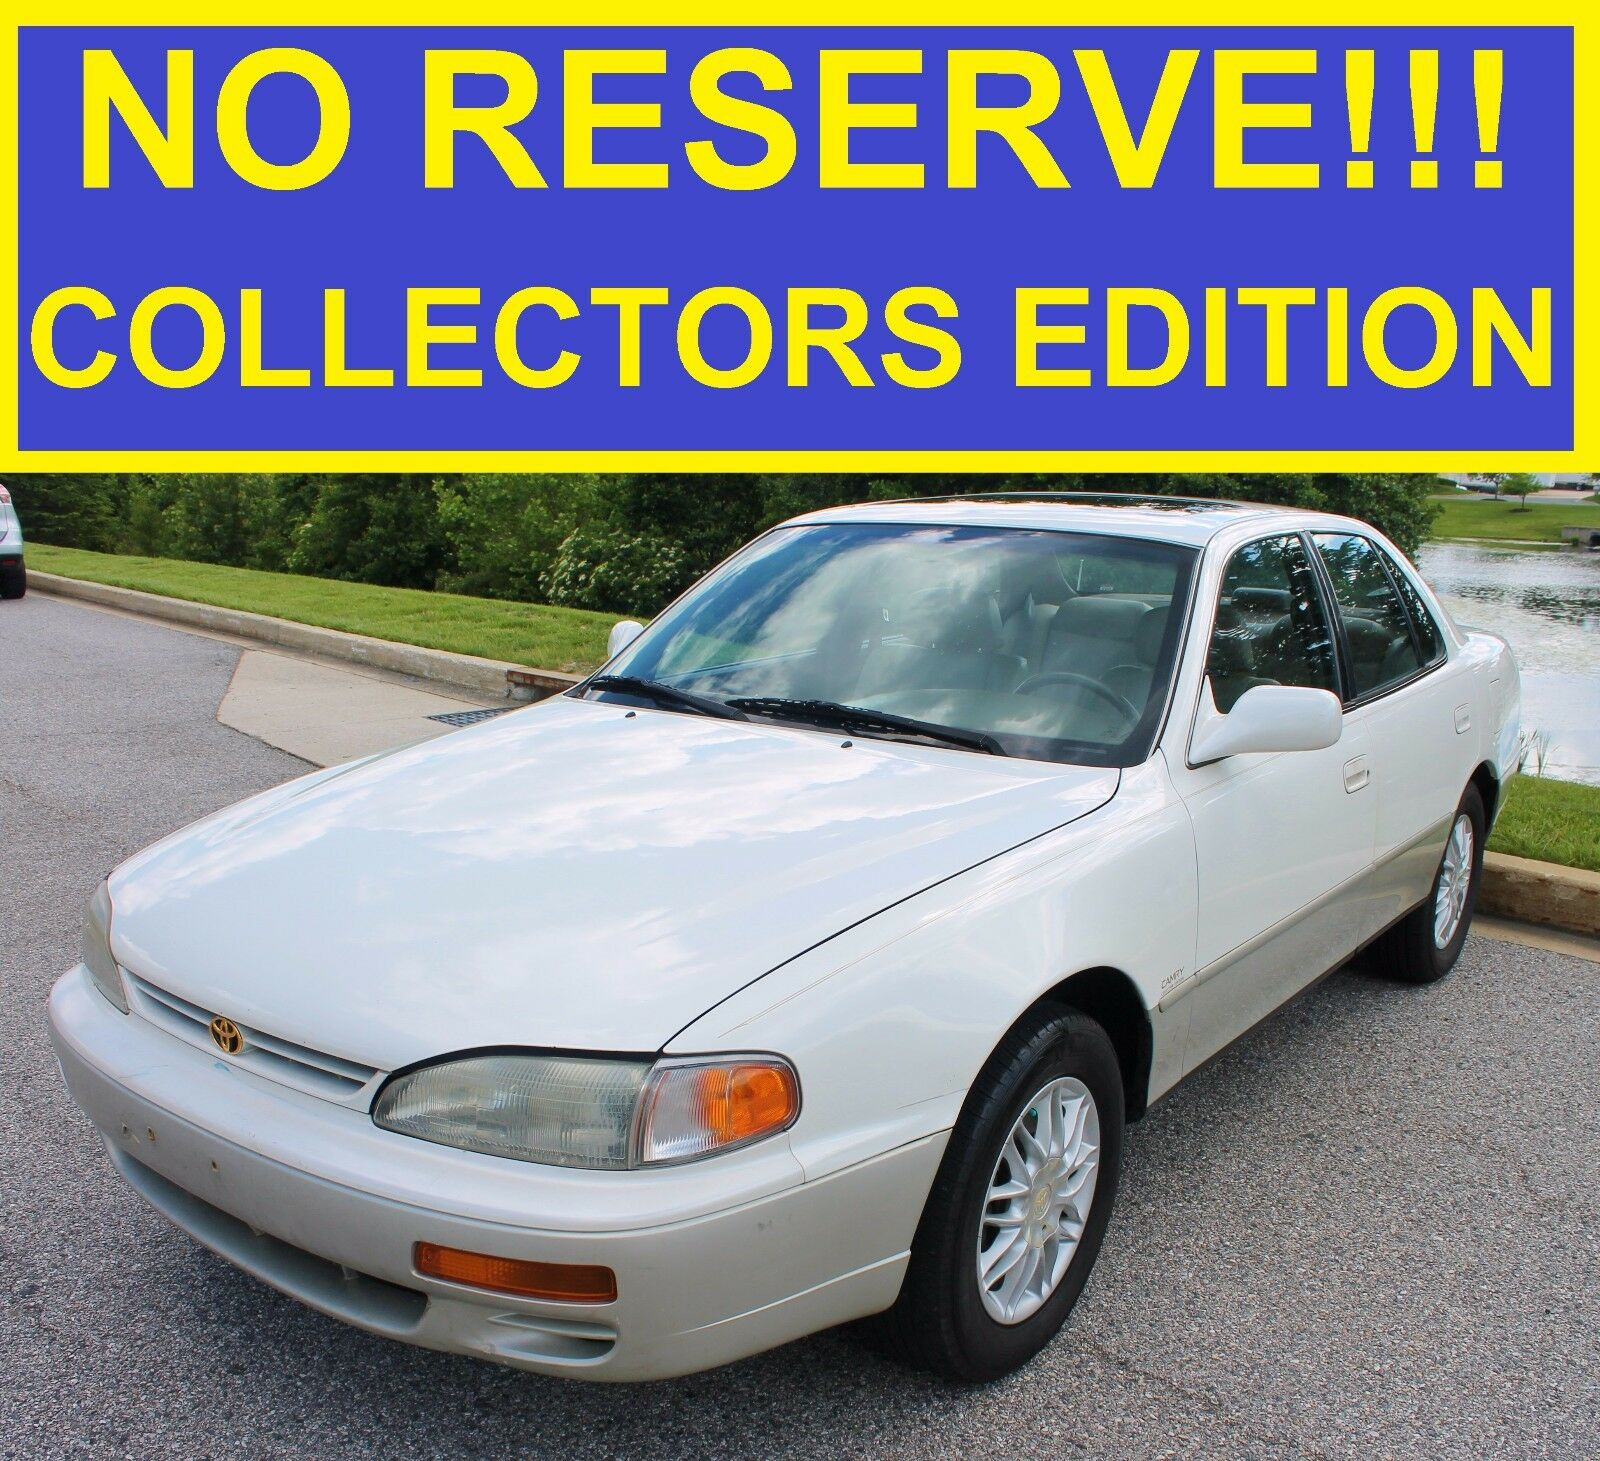 1996 toyota camry le collector edition 3 0 v6 97 98 99 2000 01 corolla xle used toyota. Black Bedroom Furniture Sets. Home Design Ideas